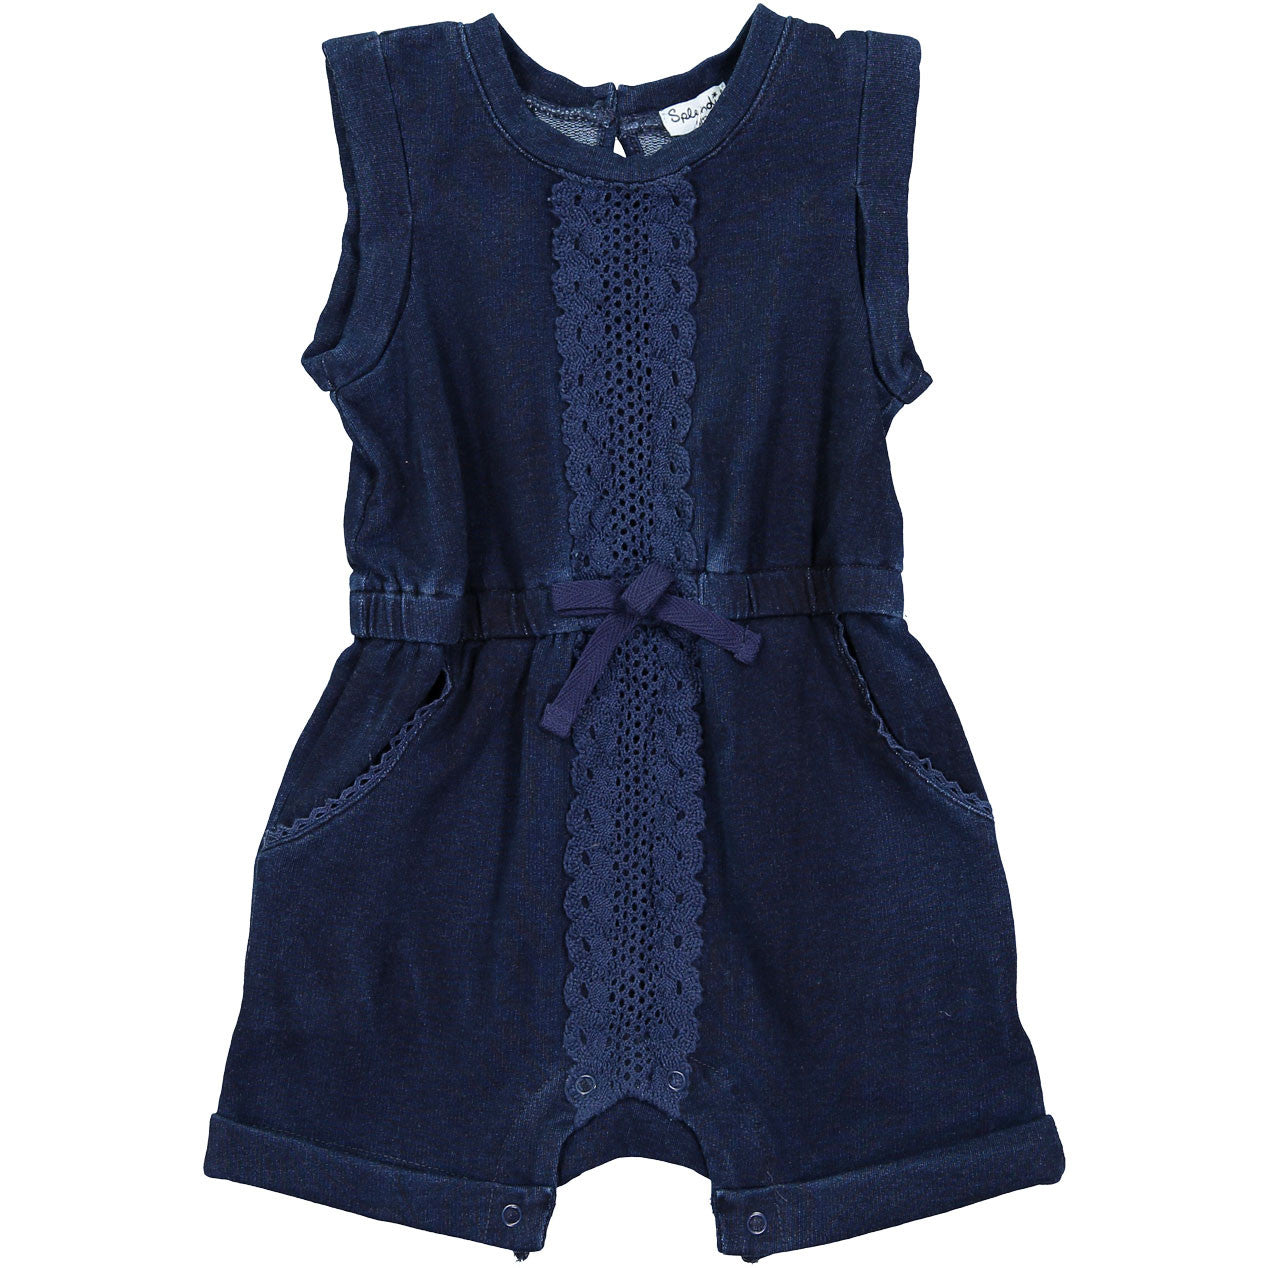 Splendid Indigo Romper With Lace - Ladida